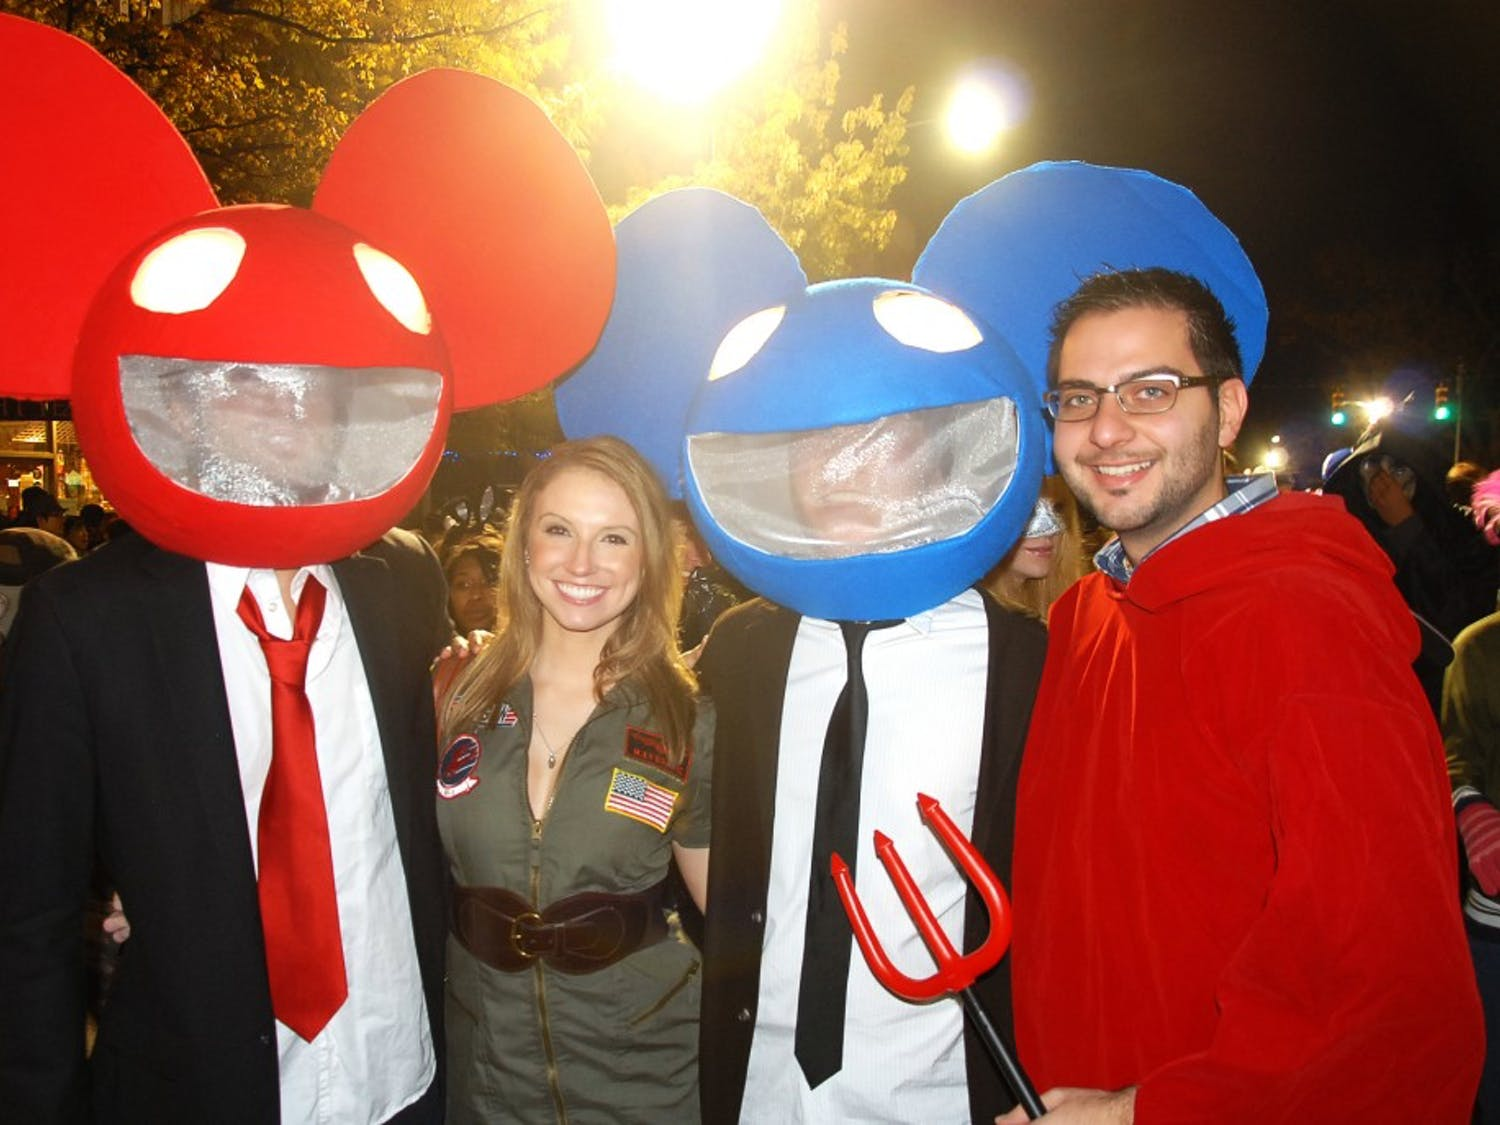 """Peter Ngeyen (far left) and Arend Klooster (second from right) pose as DeadMau5.""""Young kids think we are Mickey Mouse, but college kids know what we are,"""" Ngeyen said."""